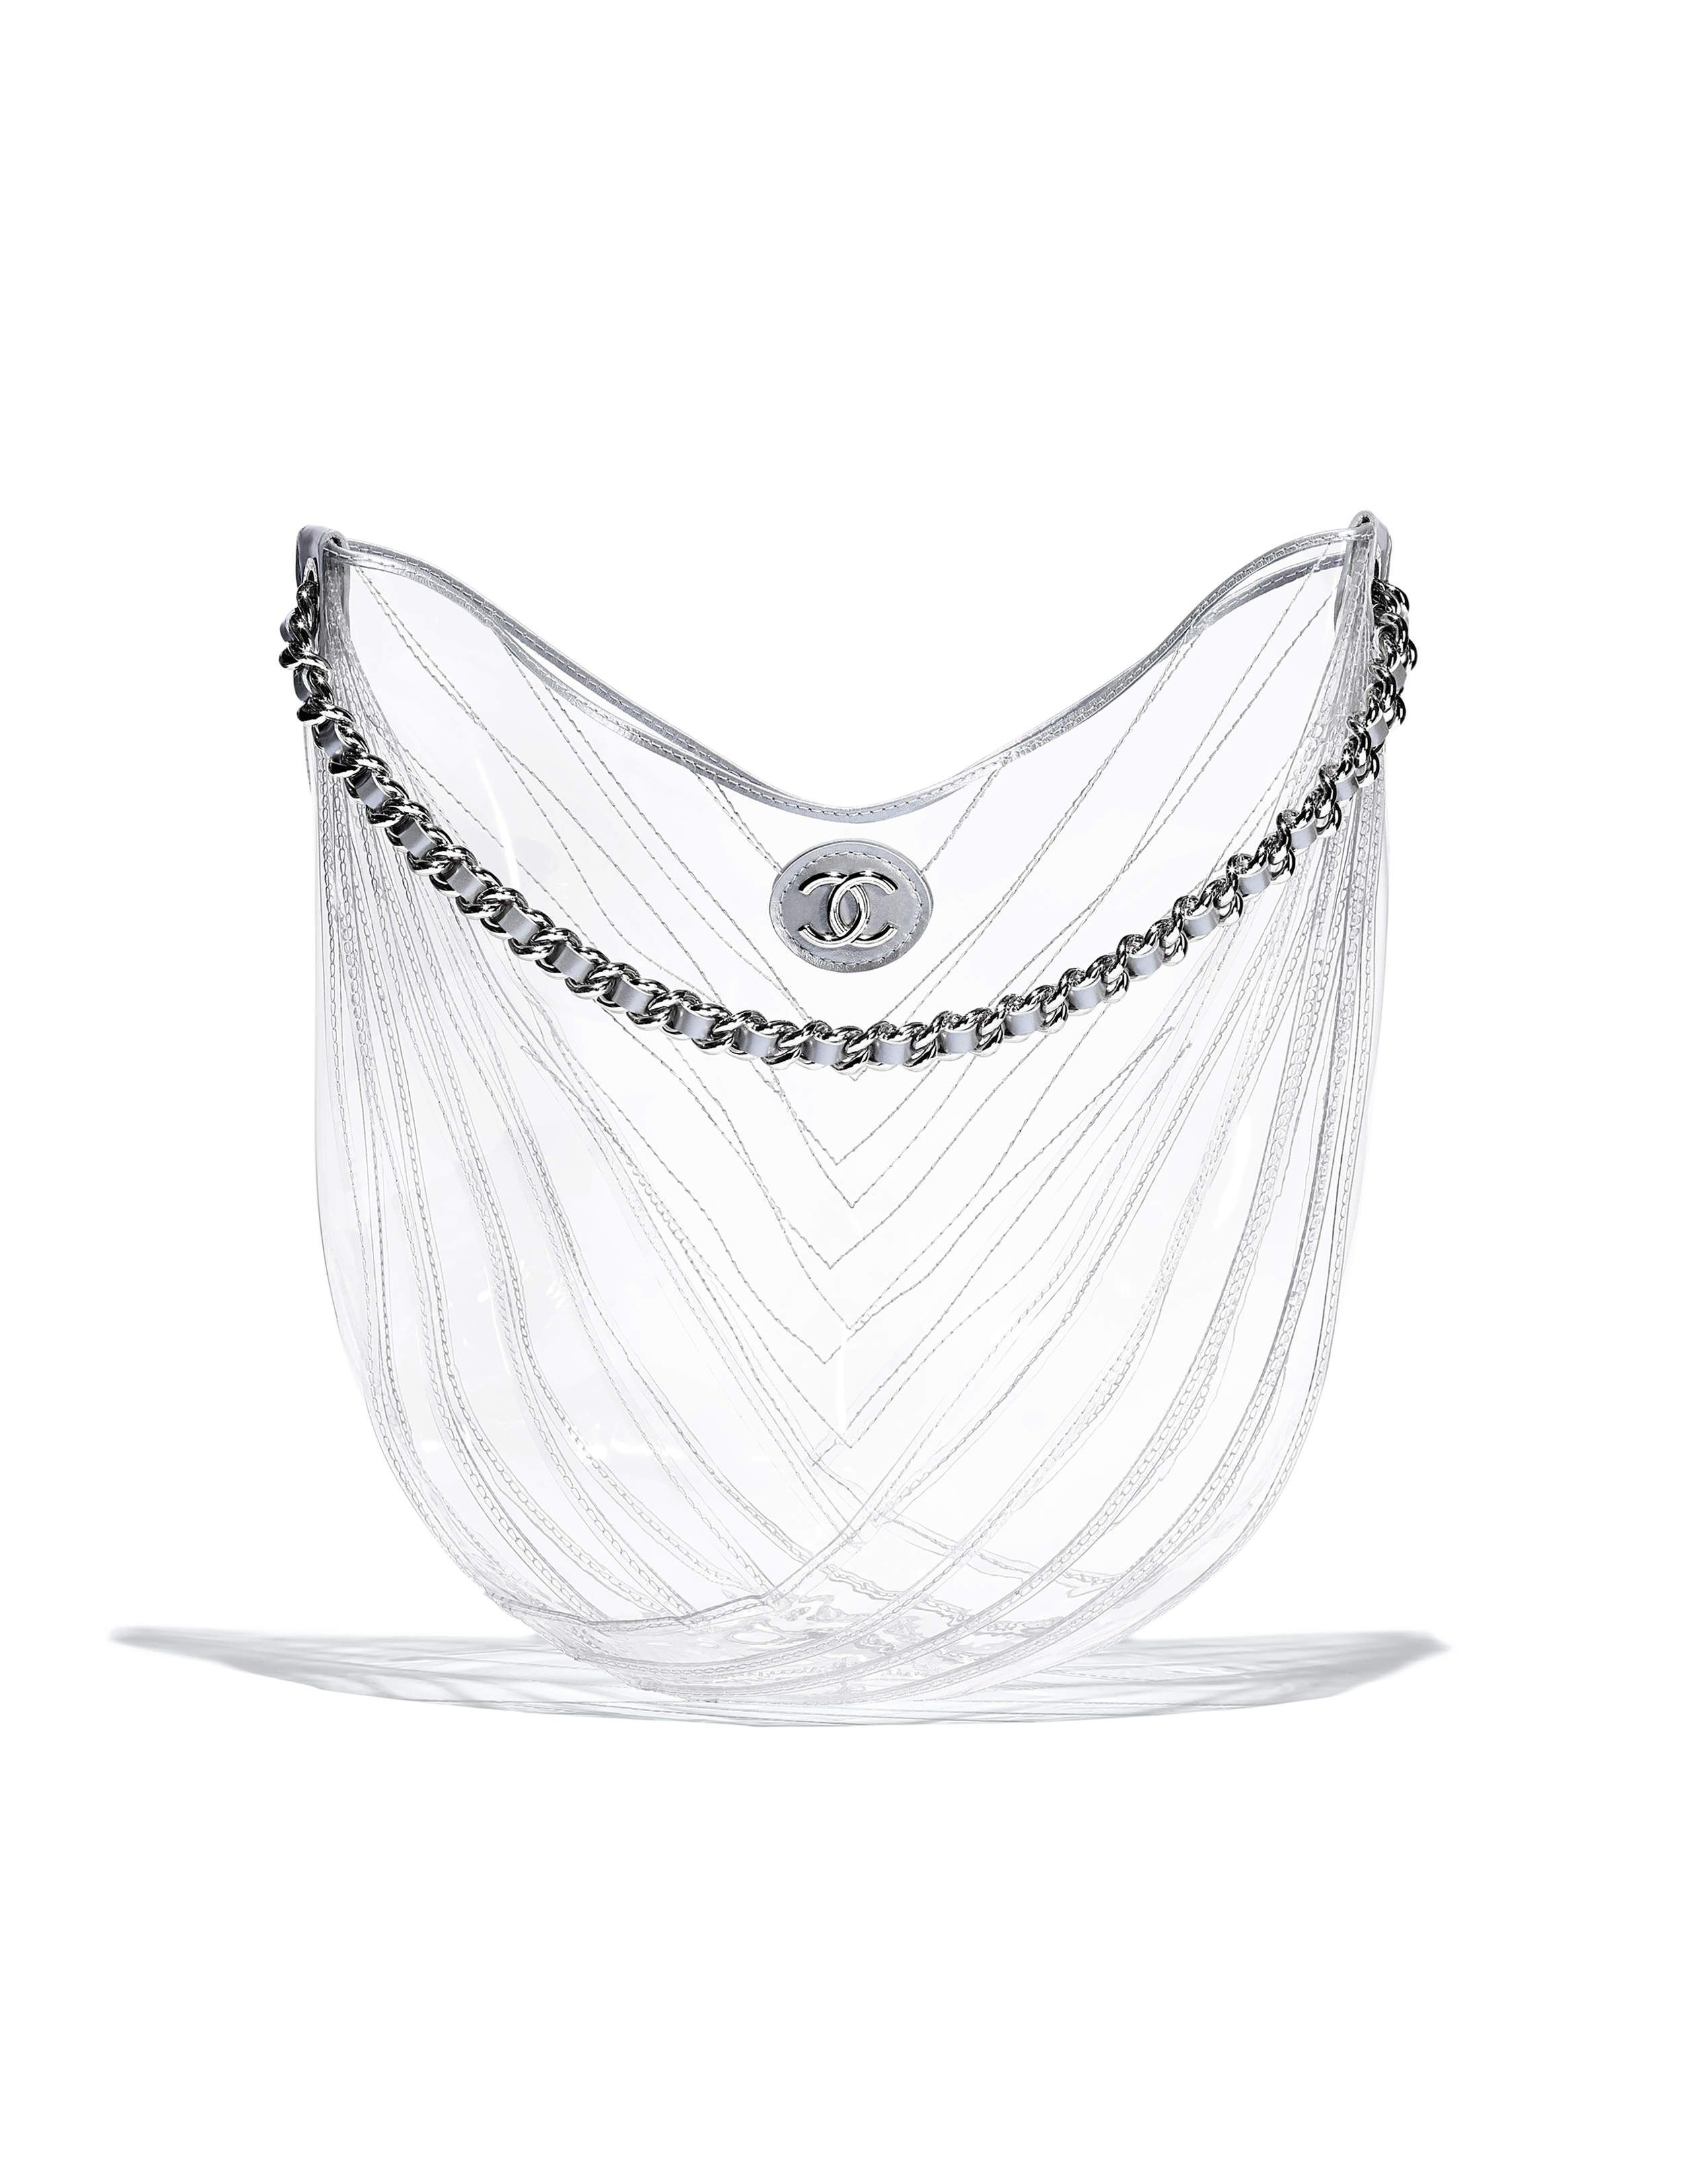 204966ed08a559 Chanel - SS2018 | Transparent PVC Hobo bag | BAGS | Chanel handbags ...